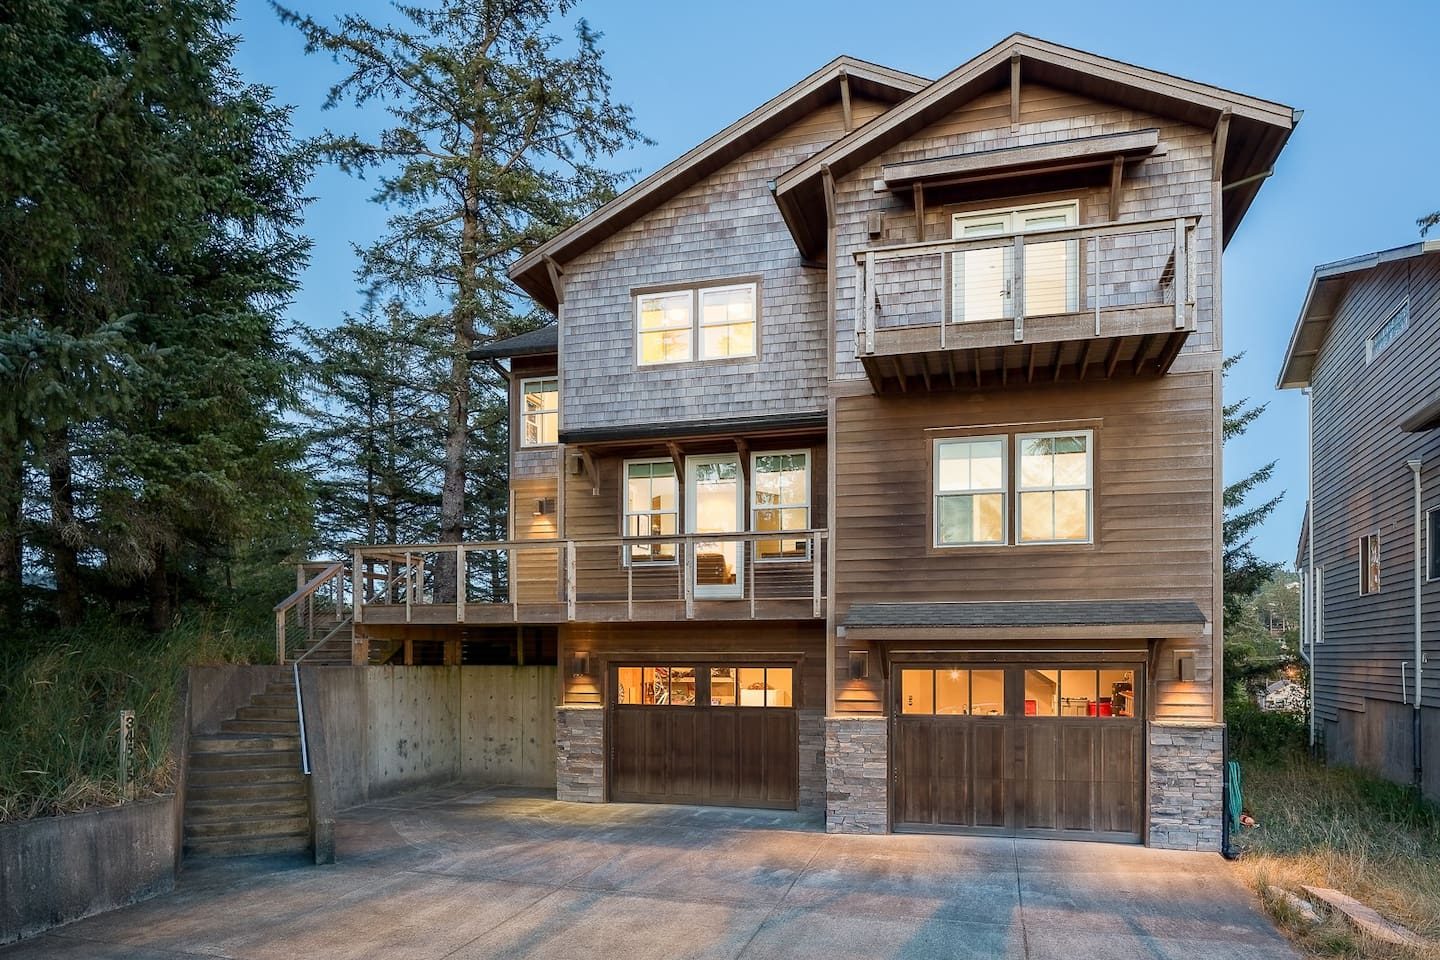 Welcome to Pacific City! This three-story home is professionally managed by TurnKey Vacation Rentals.